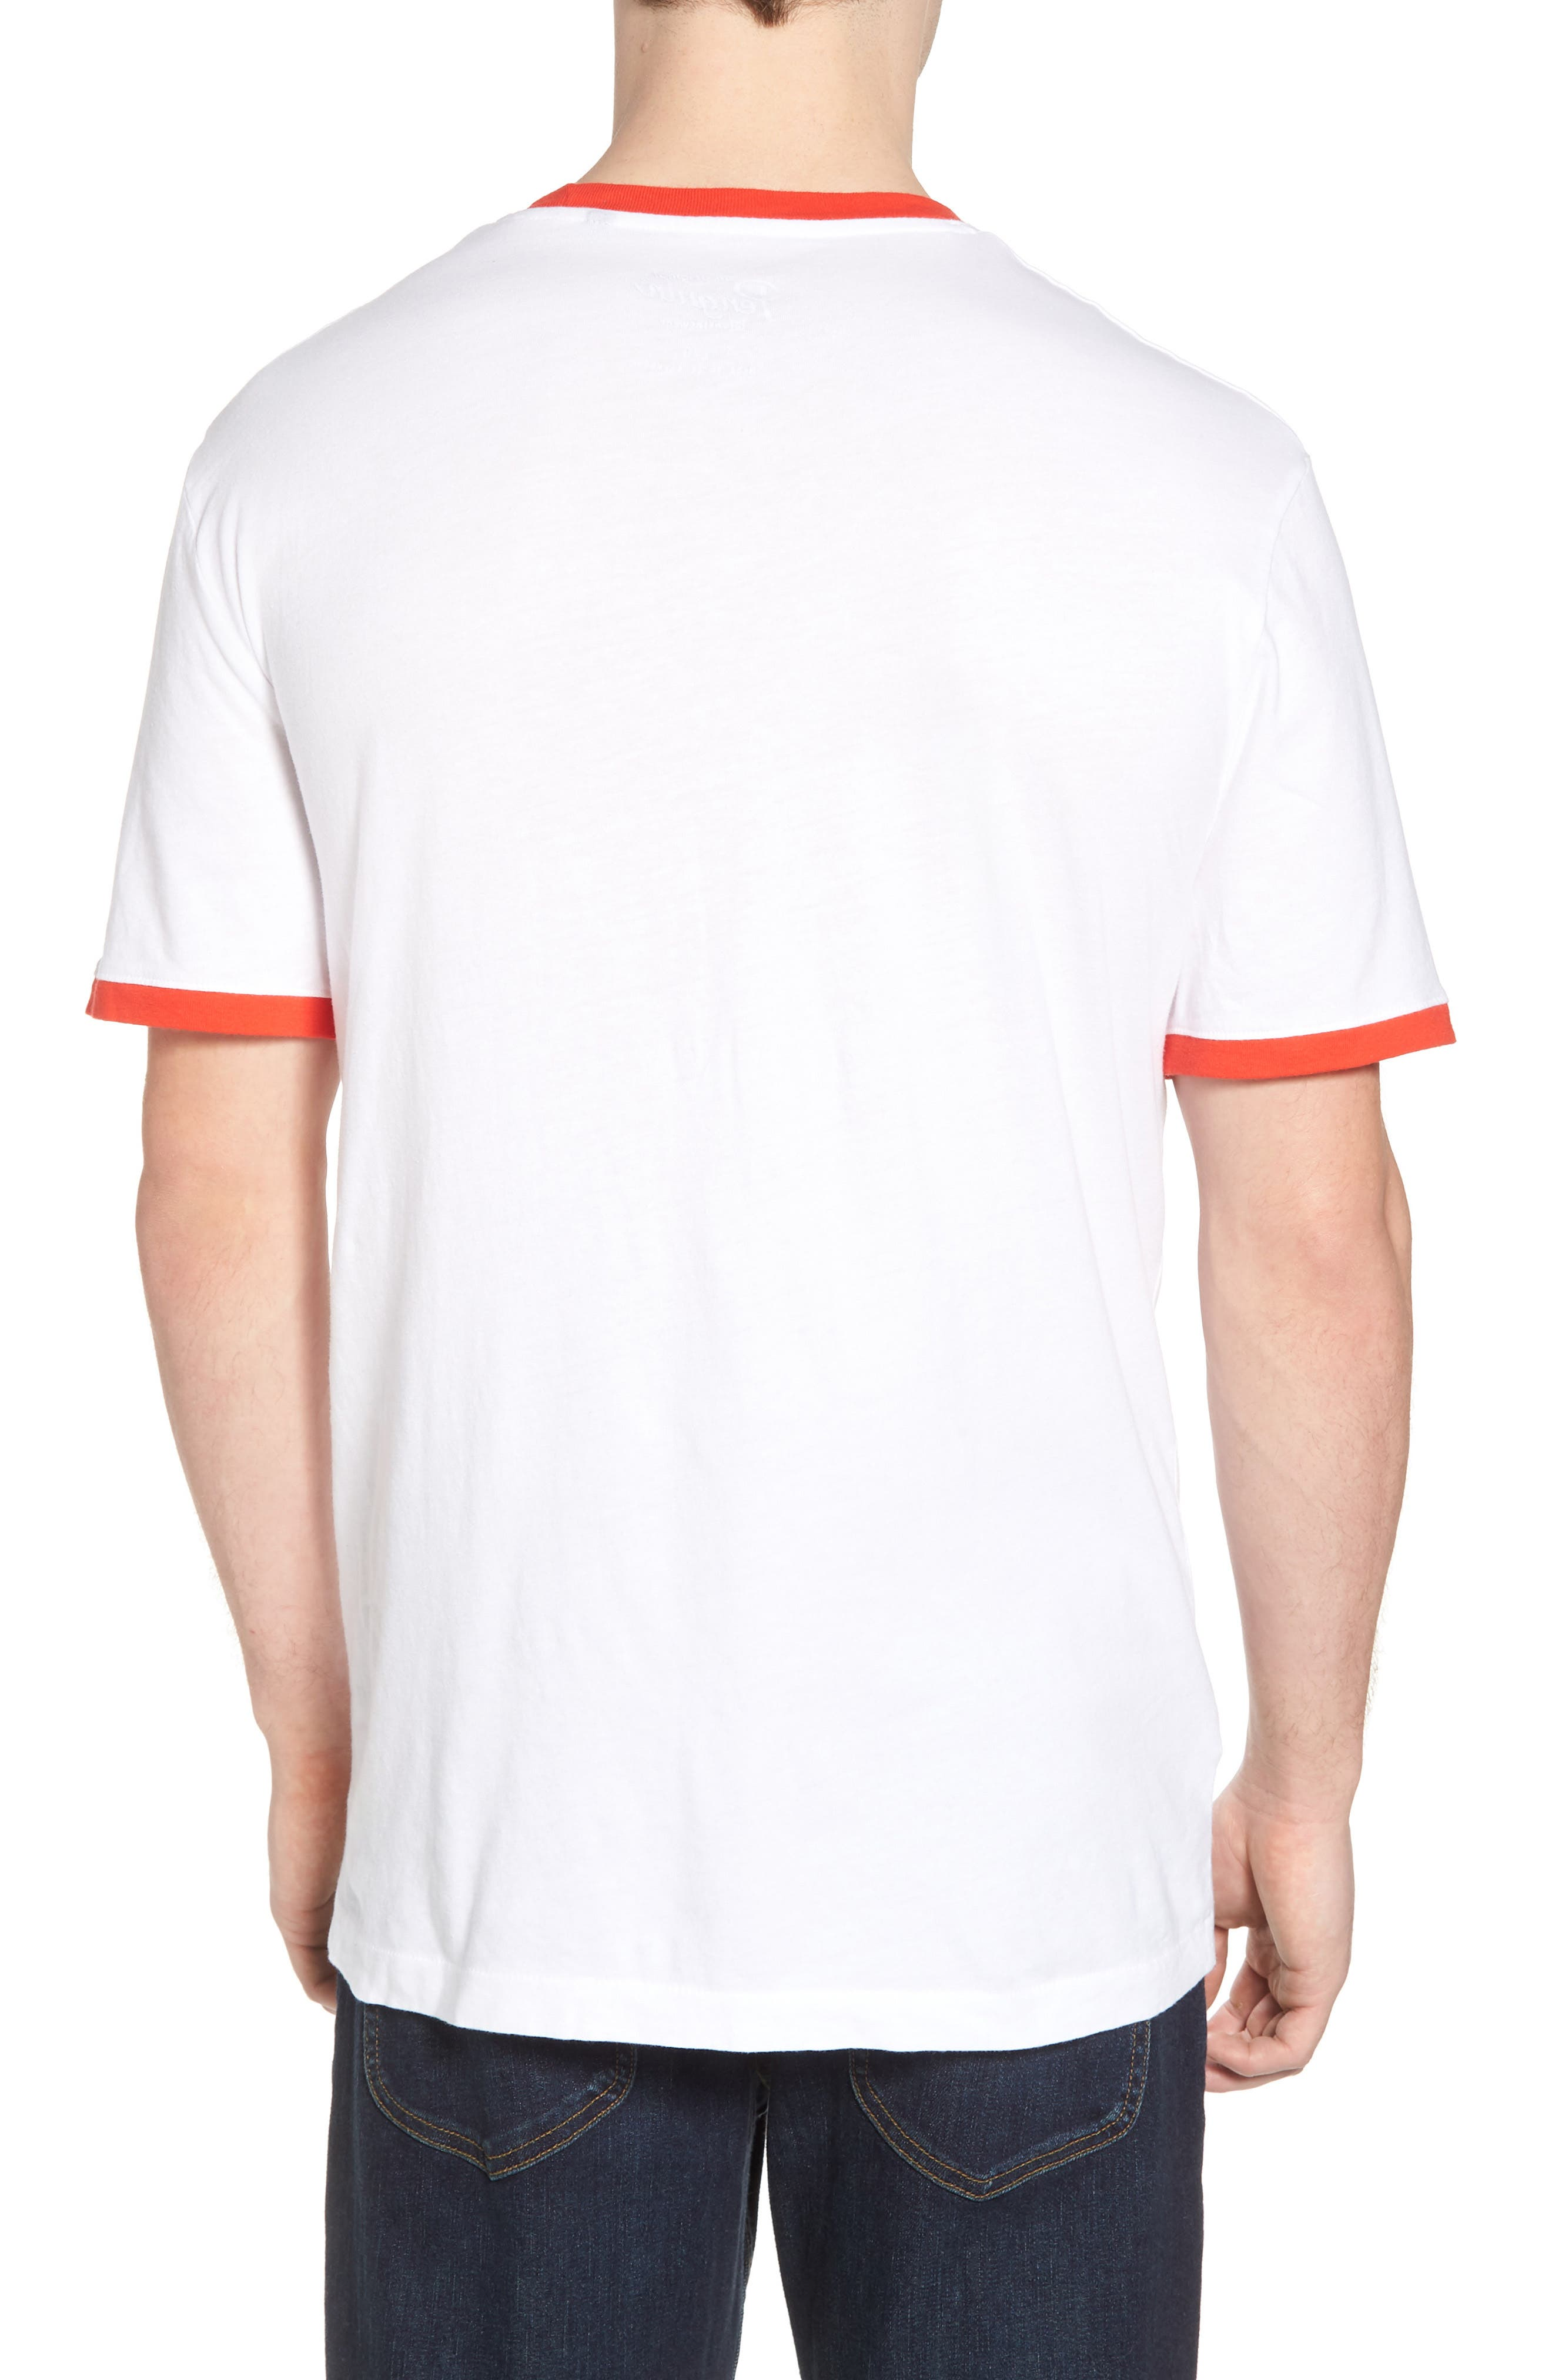 Stay Weird T-Shirt,                             Alternate thumbnail 2, color,                             Bright White